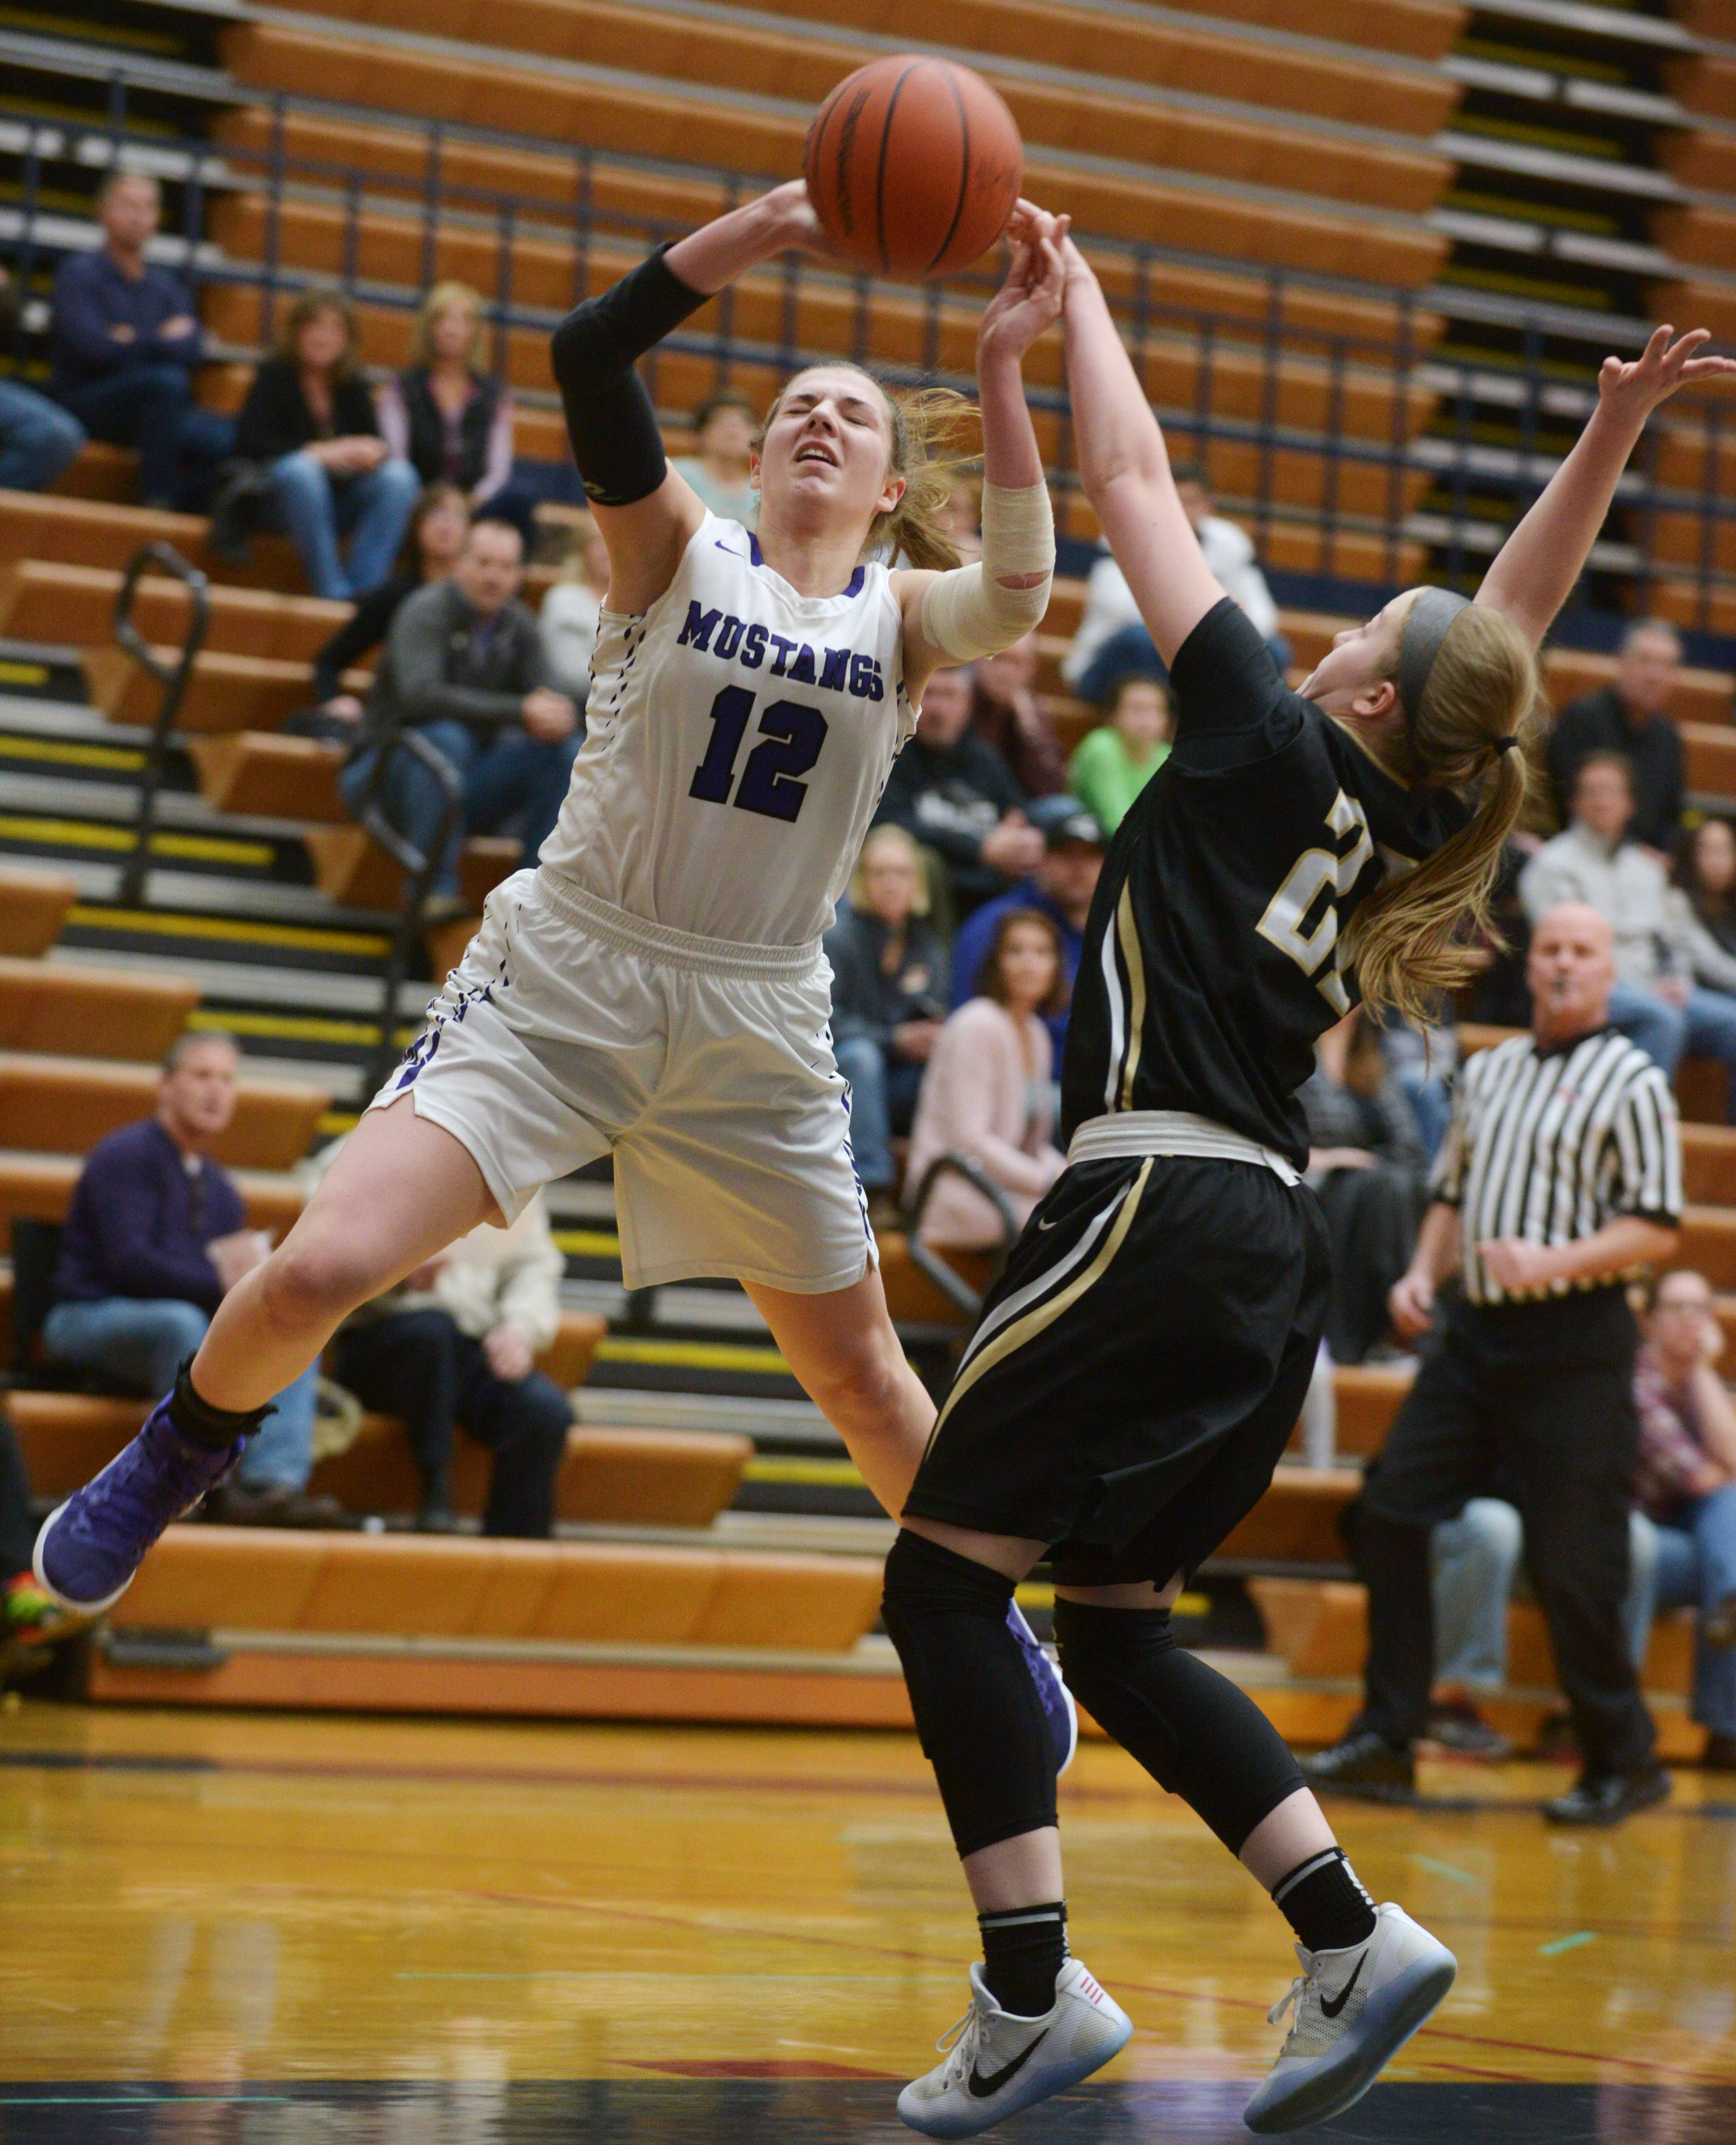 Rolling Meadows' Morgan Campagna, left, gets fouled by Glenbard North's Leah Miller on a drive to the basket during the Conant regional semifinal on Tuesday.